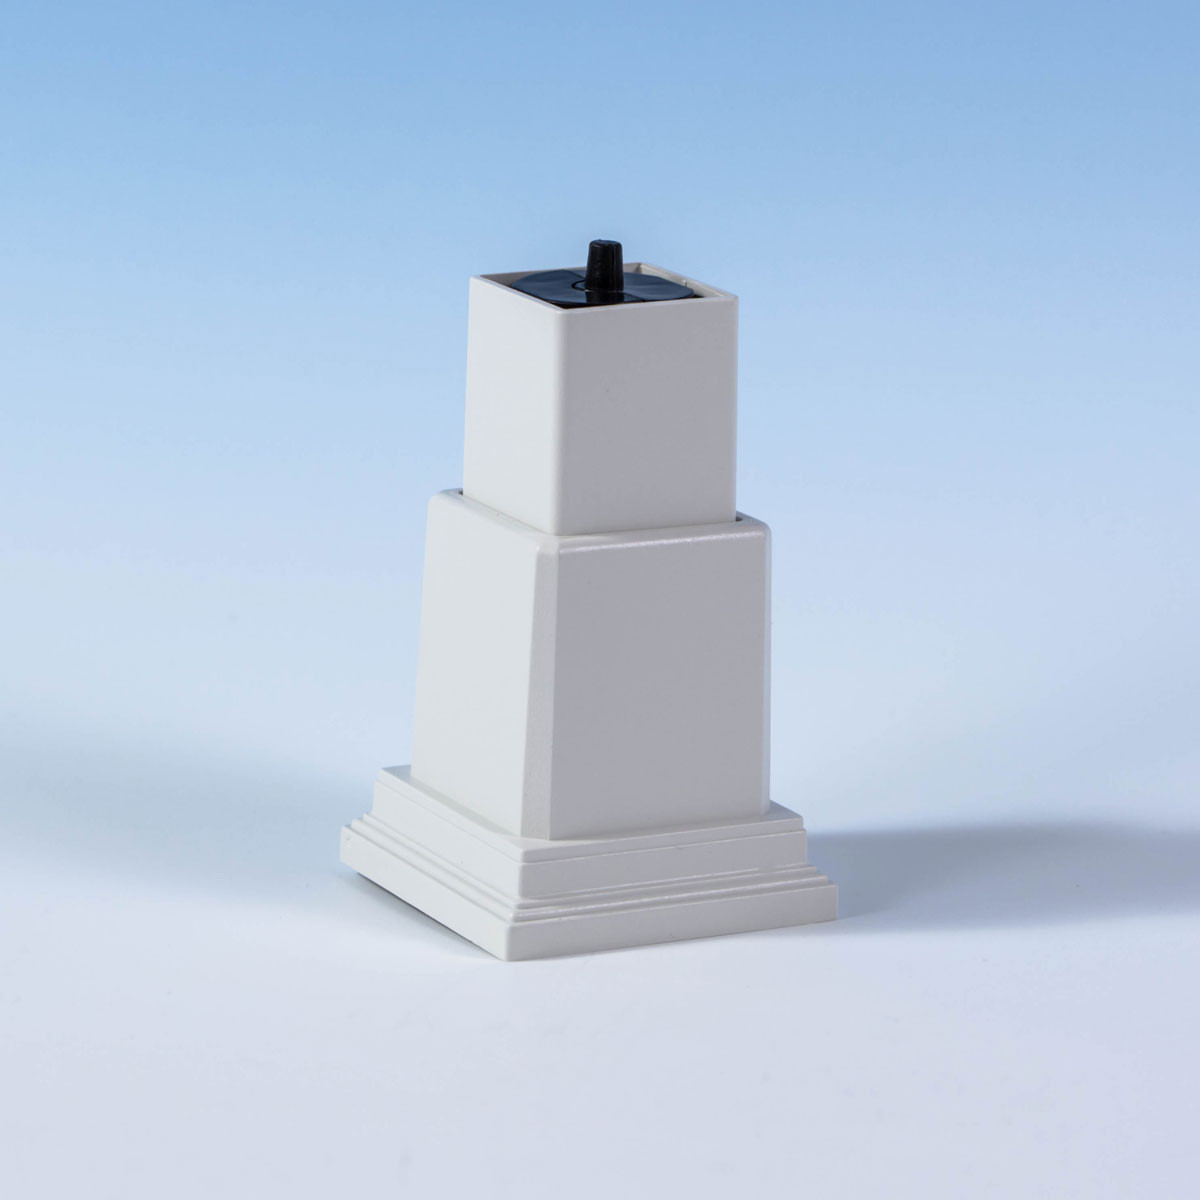 Transcend Adjustable Foot Block by Trex - Classic White style